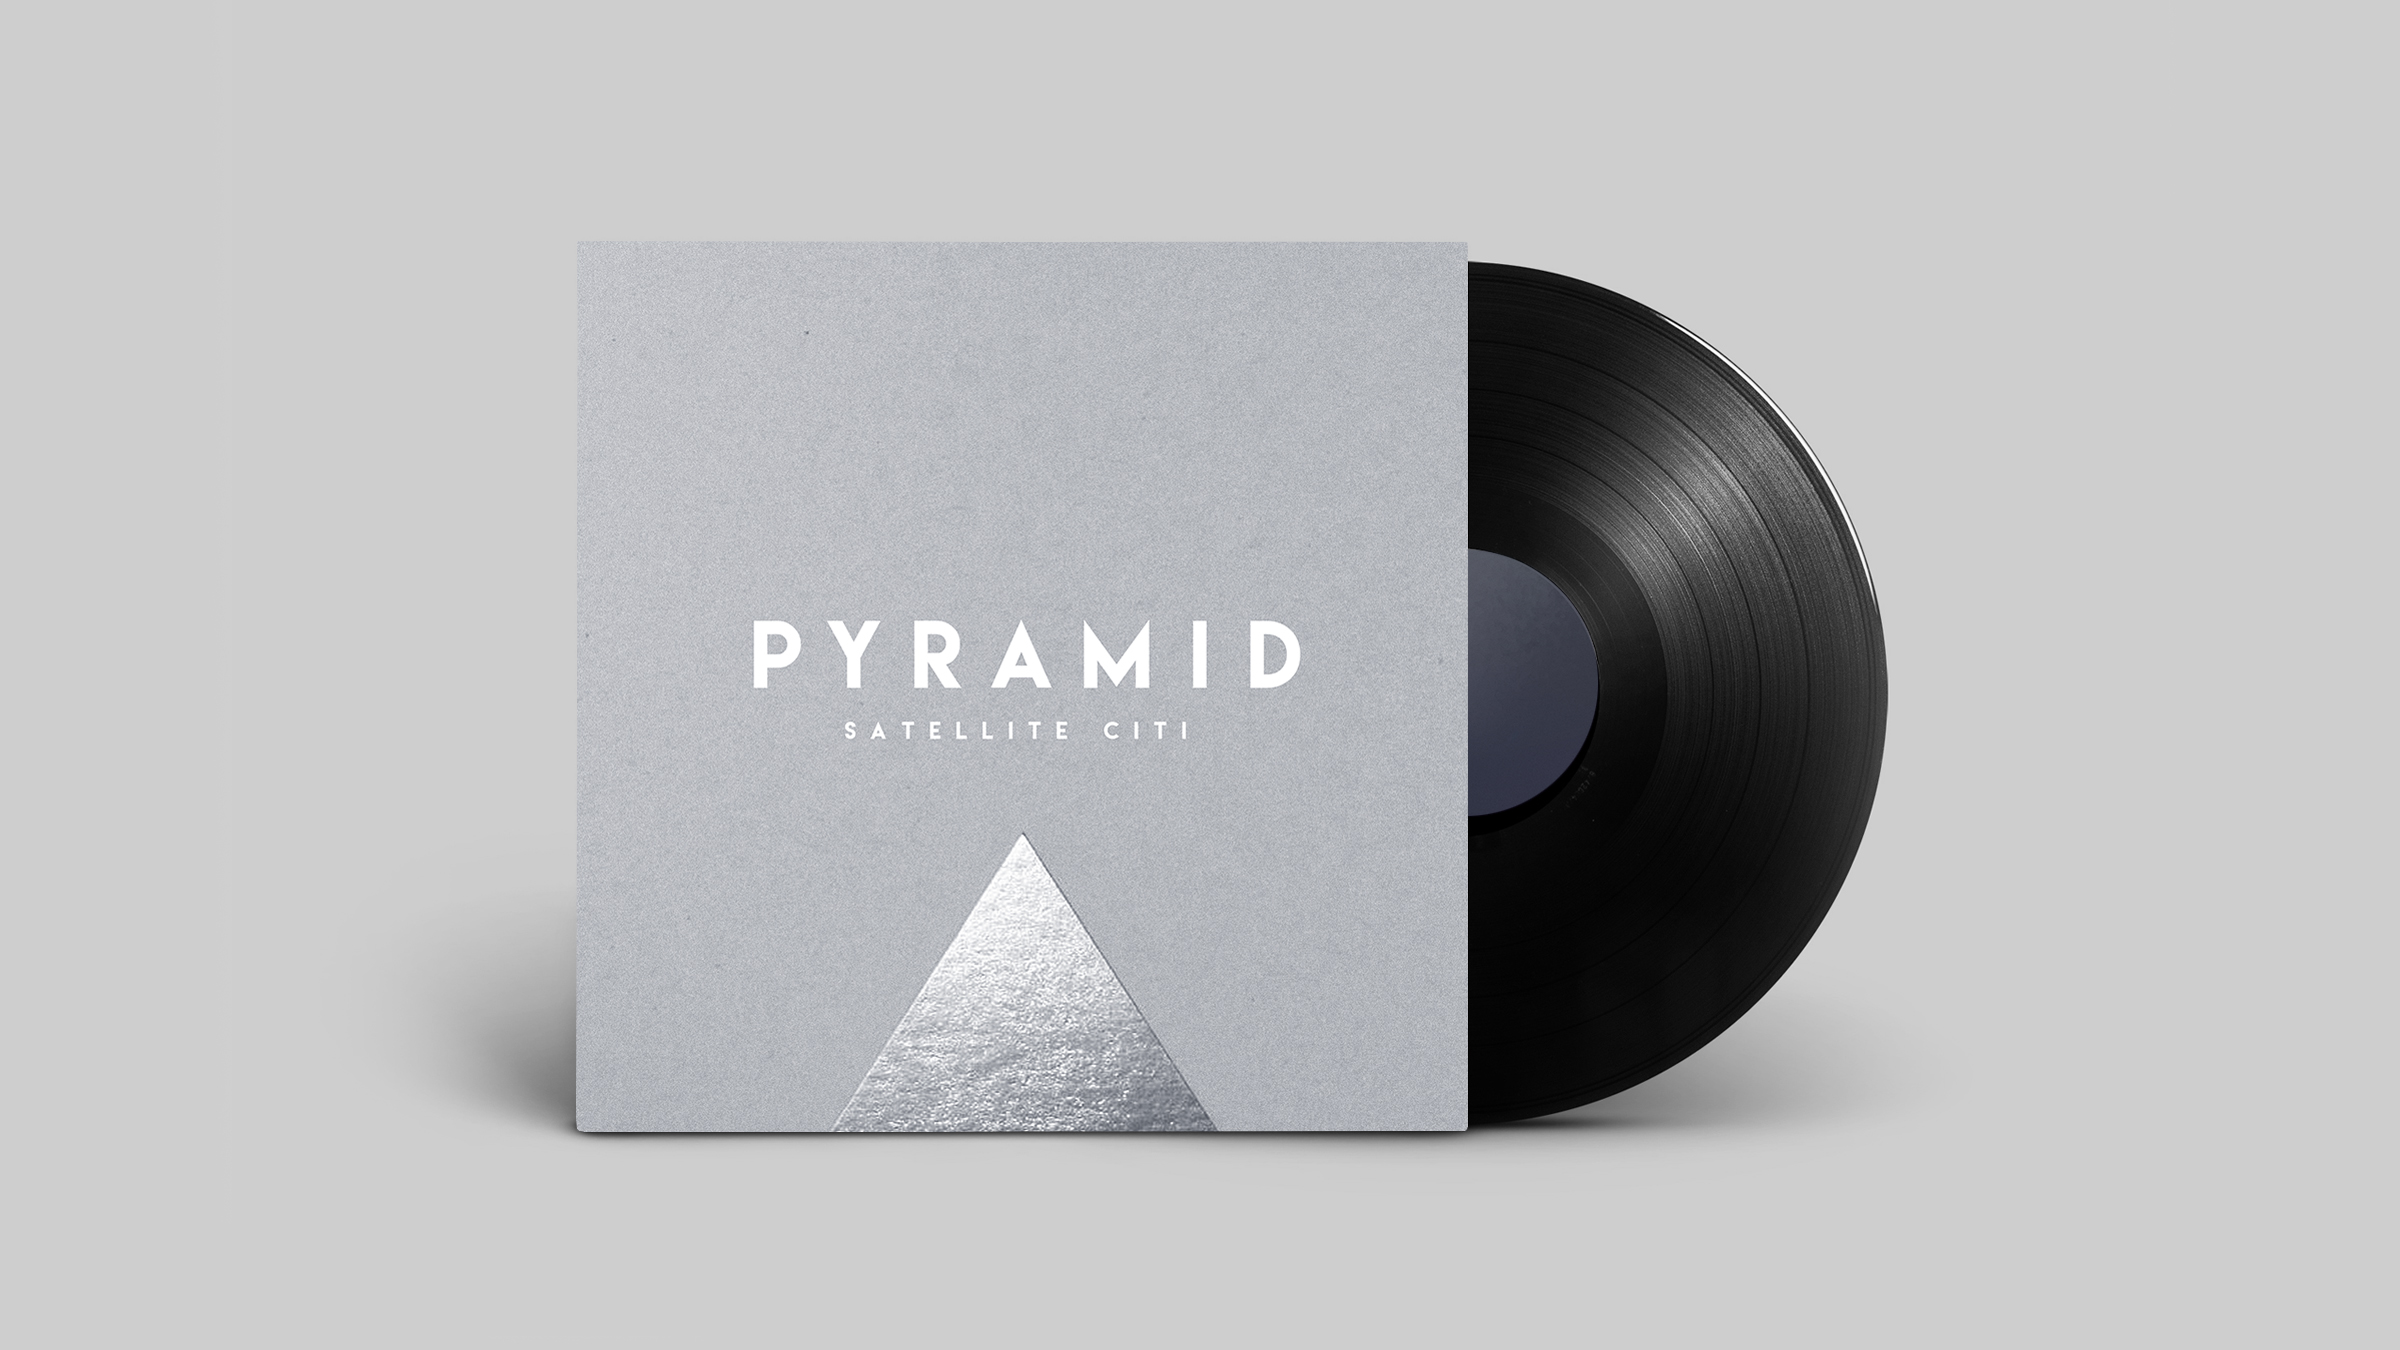 """Pyramid"" Album Art for Satellite Citi"